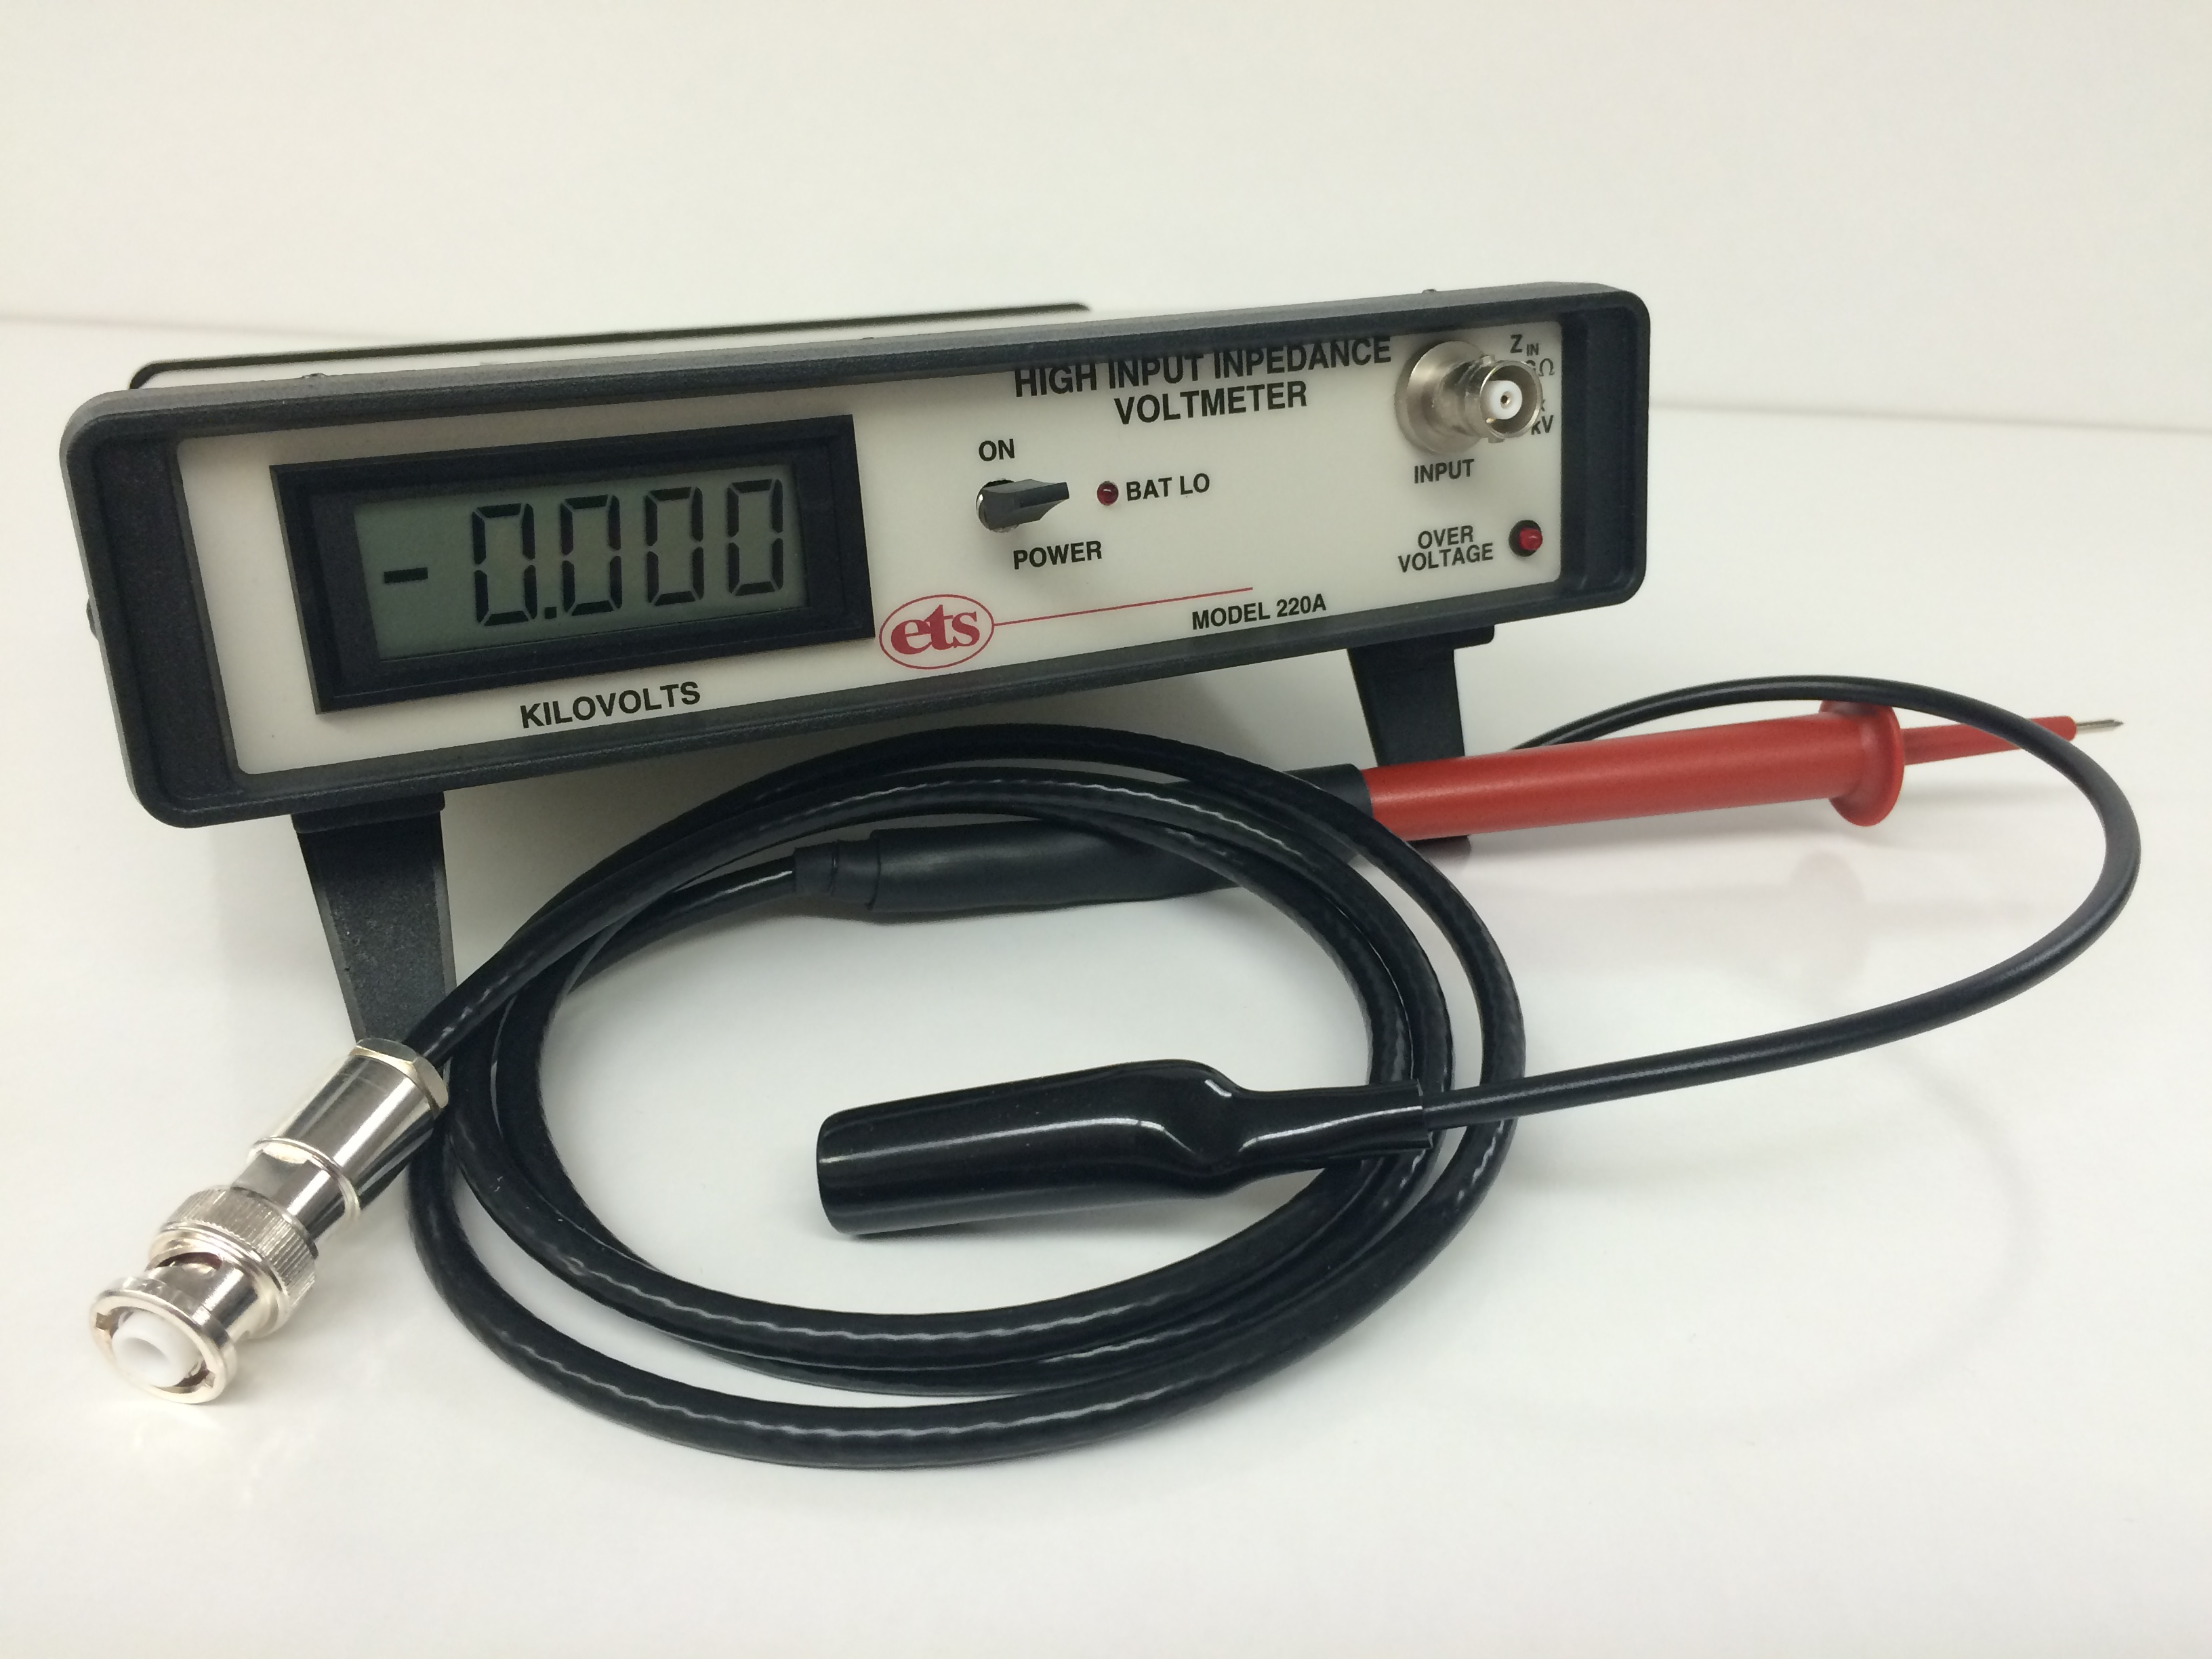 Model 220A – High Impedance Digital Voltmeter (70 Gigohm)